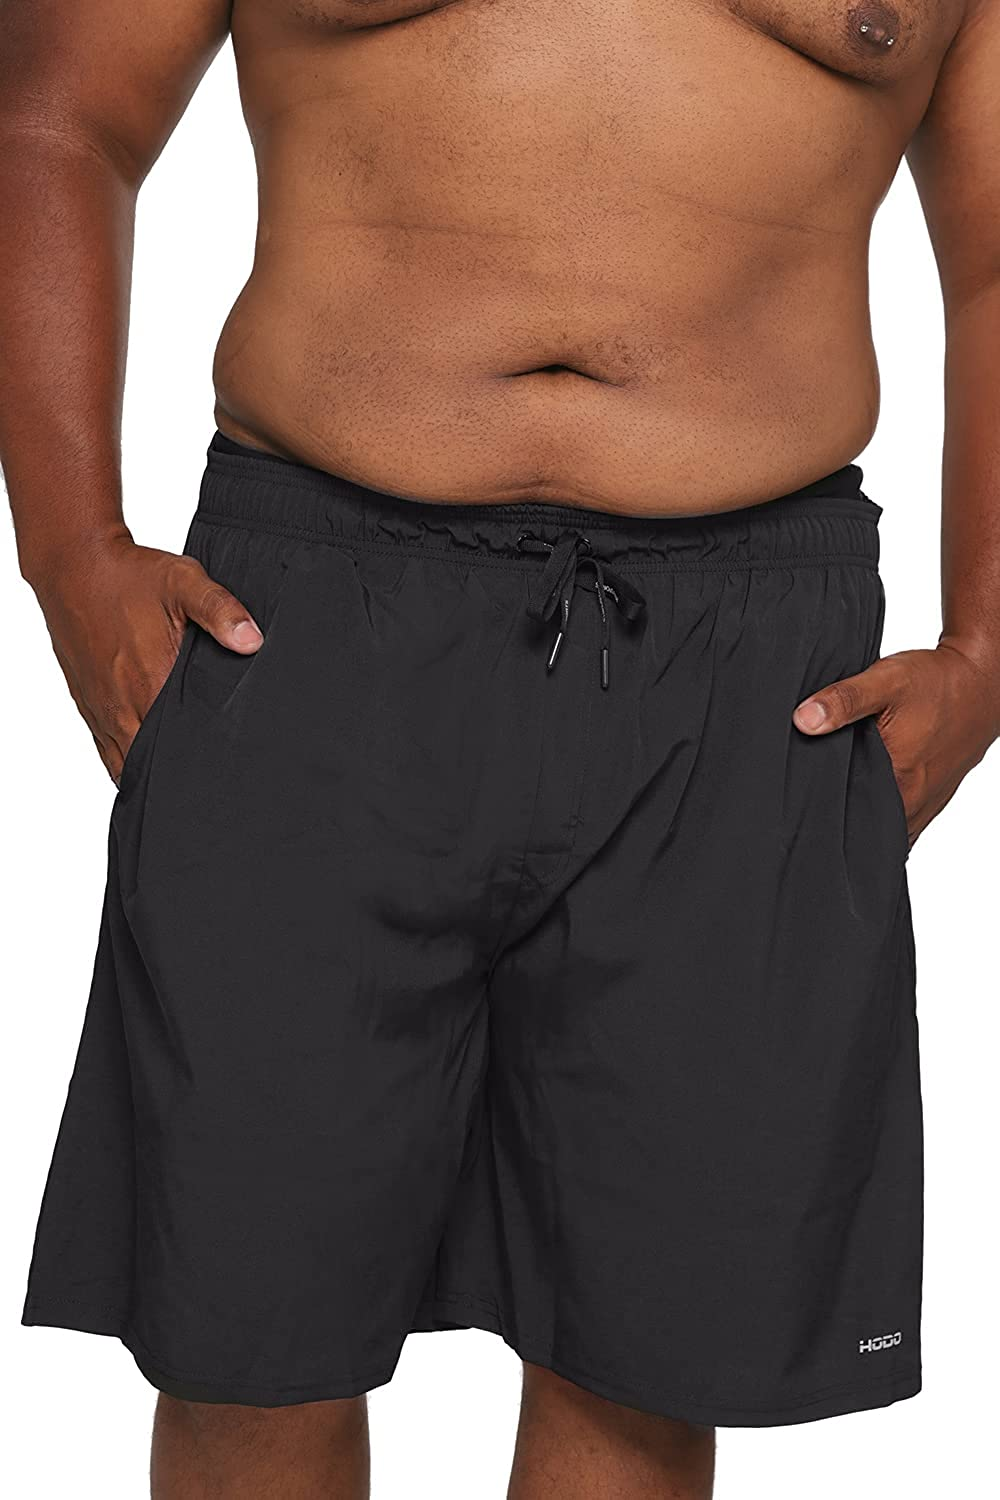 HOdo Men's Big and Tall Swim Trunks Extended Size 2XL-6XL